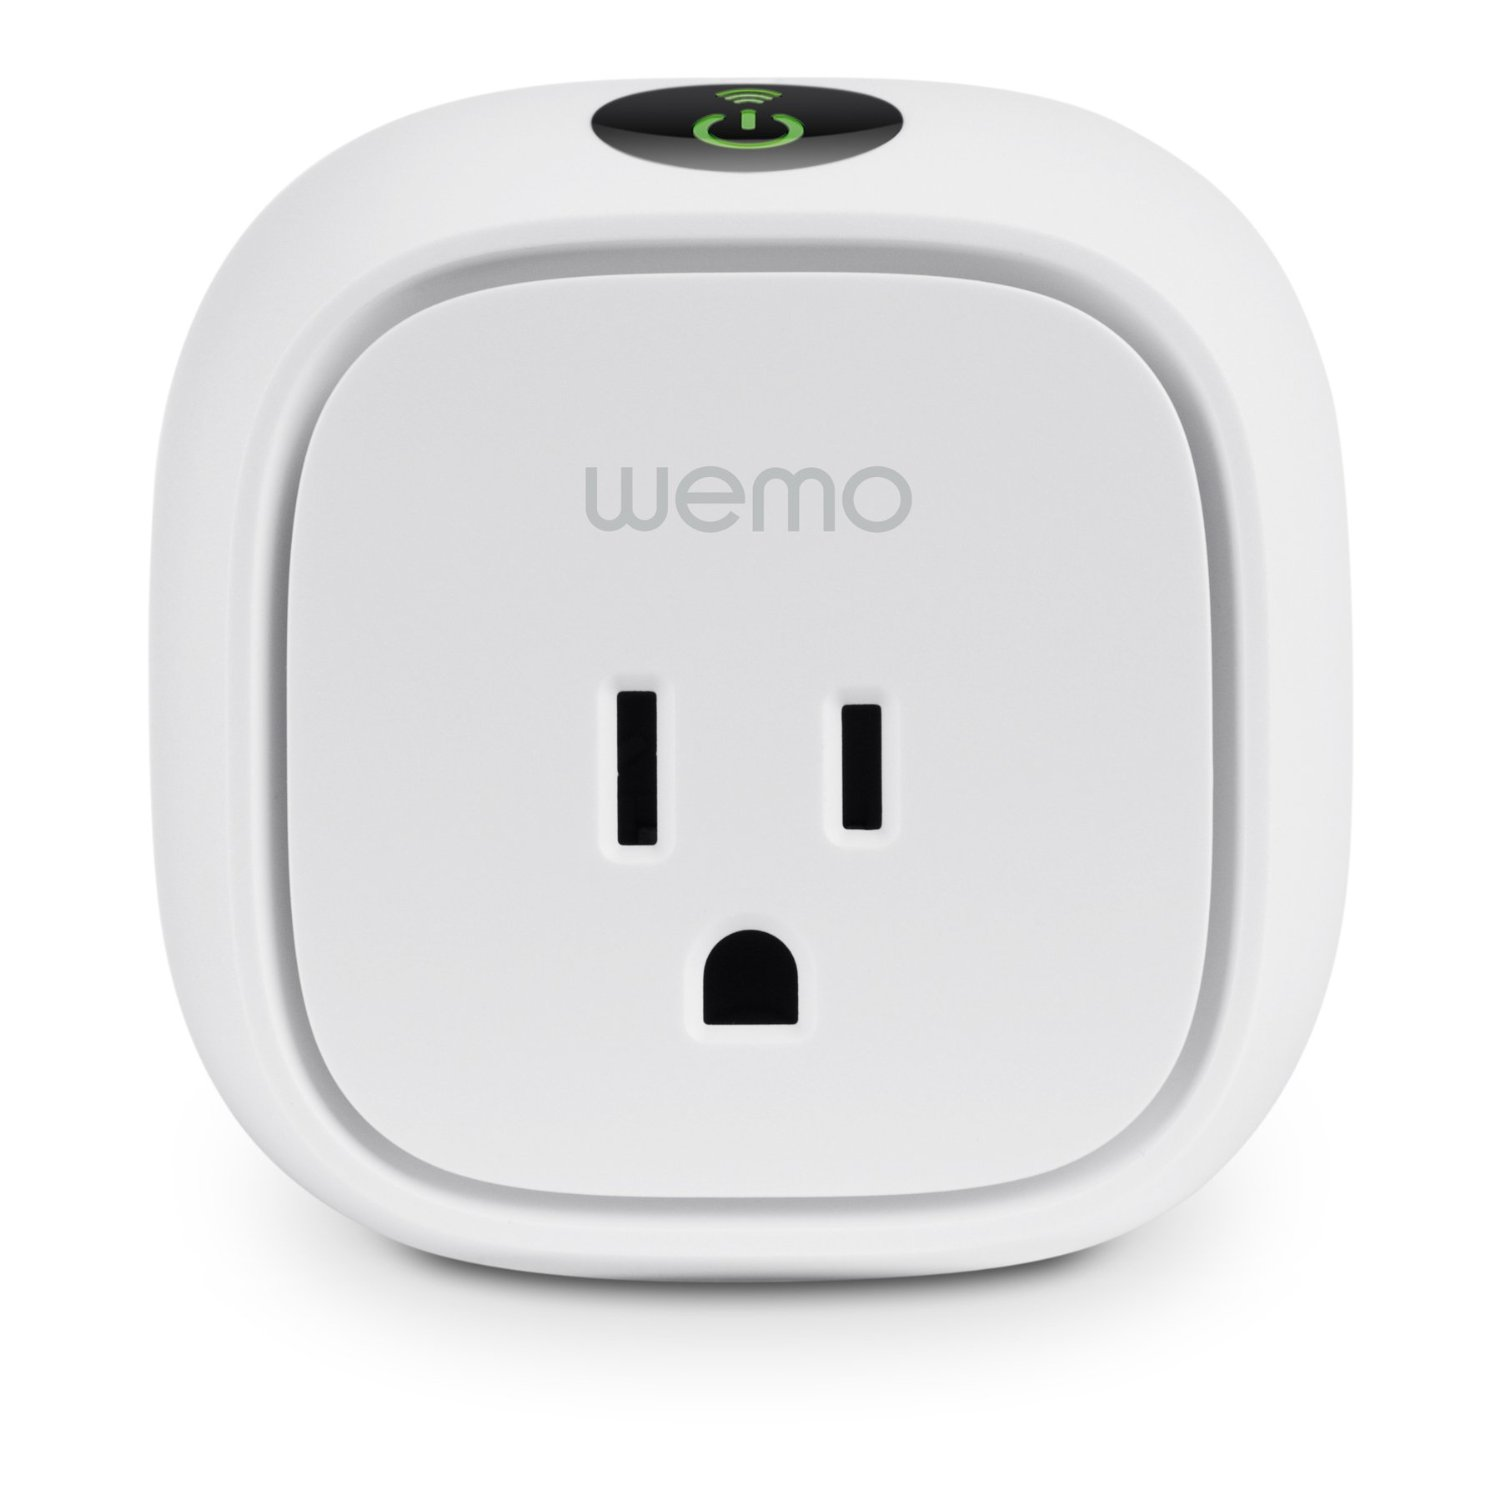 Belkin WeMo outlet unit